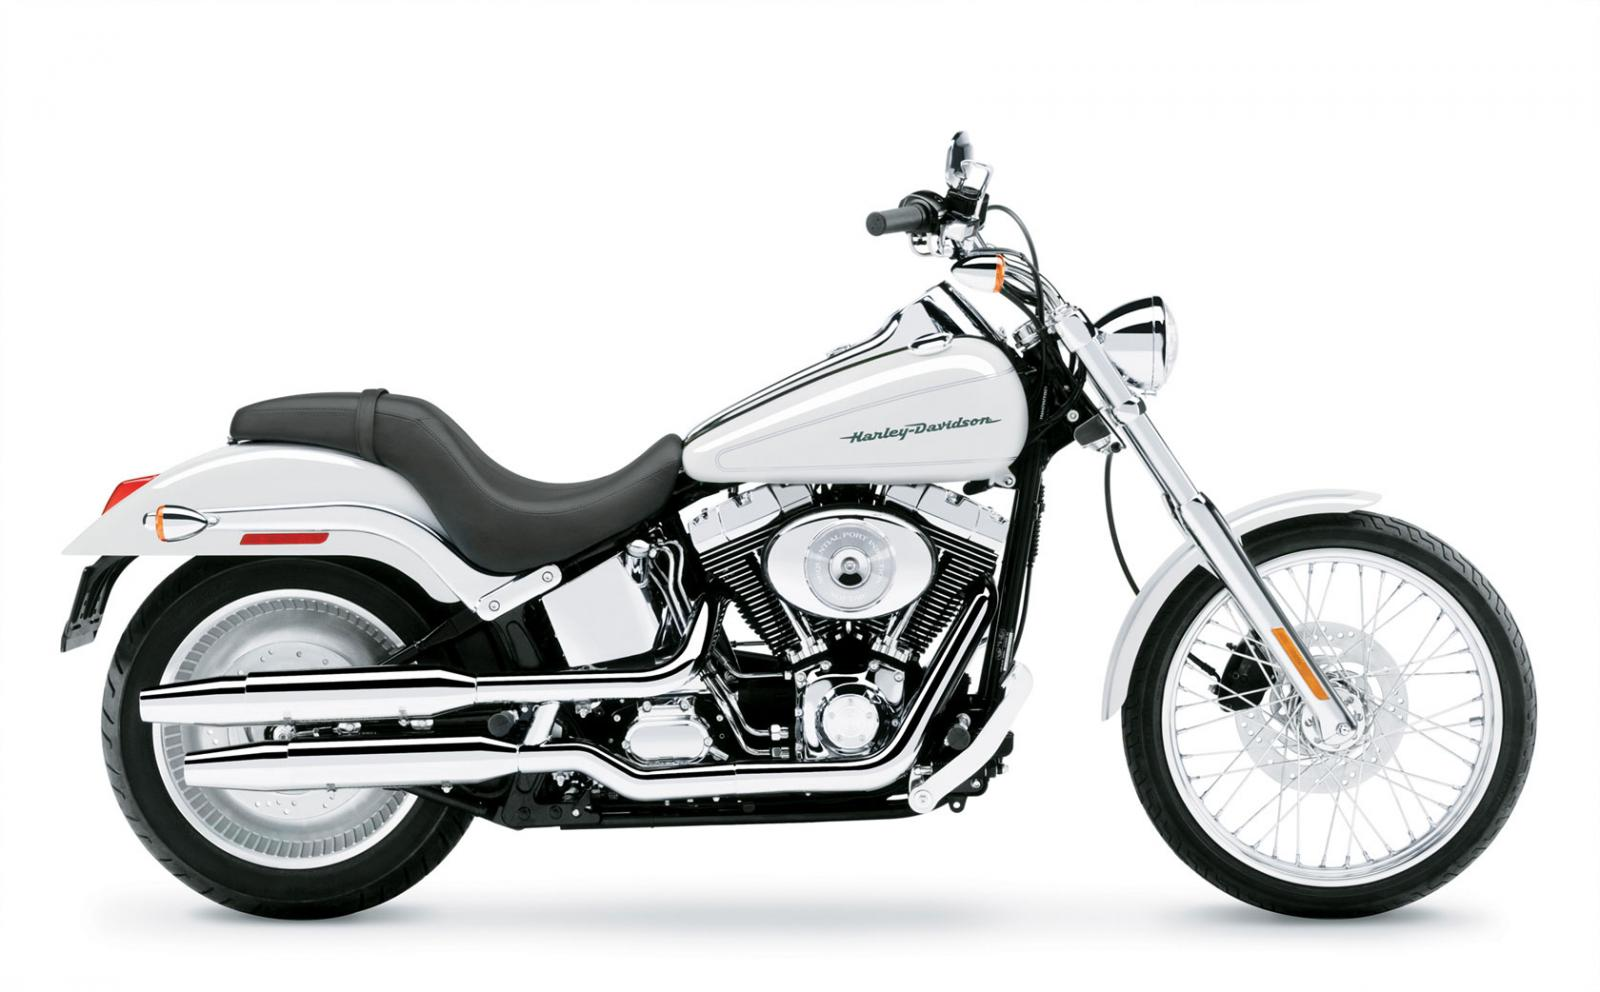 2000 Harley Ultra Classic Wiring Diagram Besides 2000 Harley Davidson